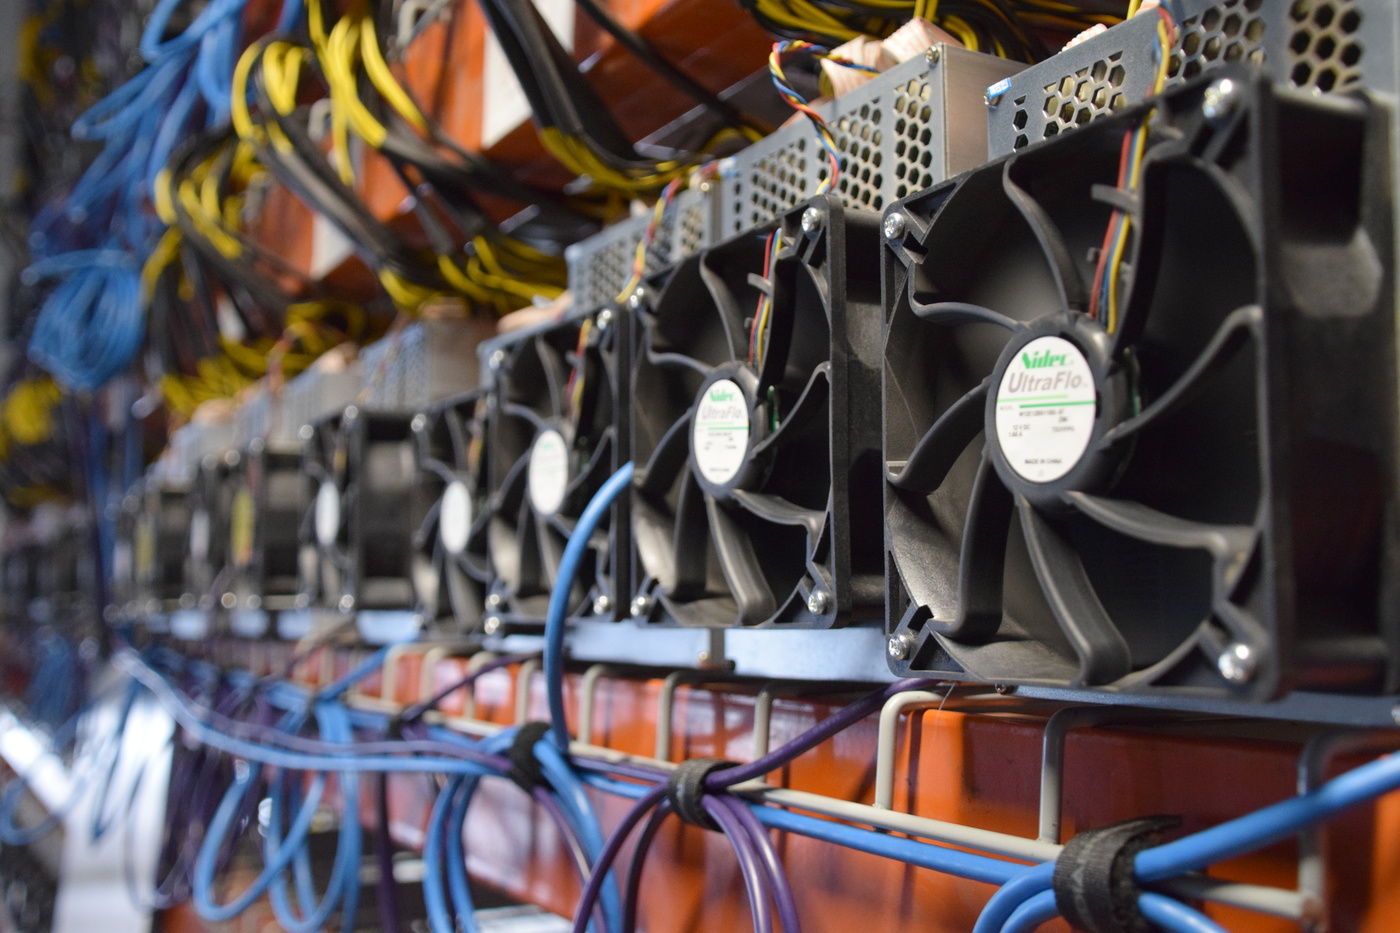 New York Power Providers Cleared to Hike Rates for Crypto Miners